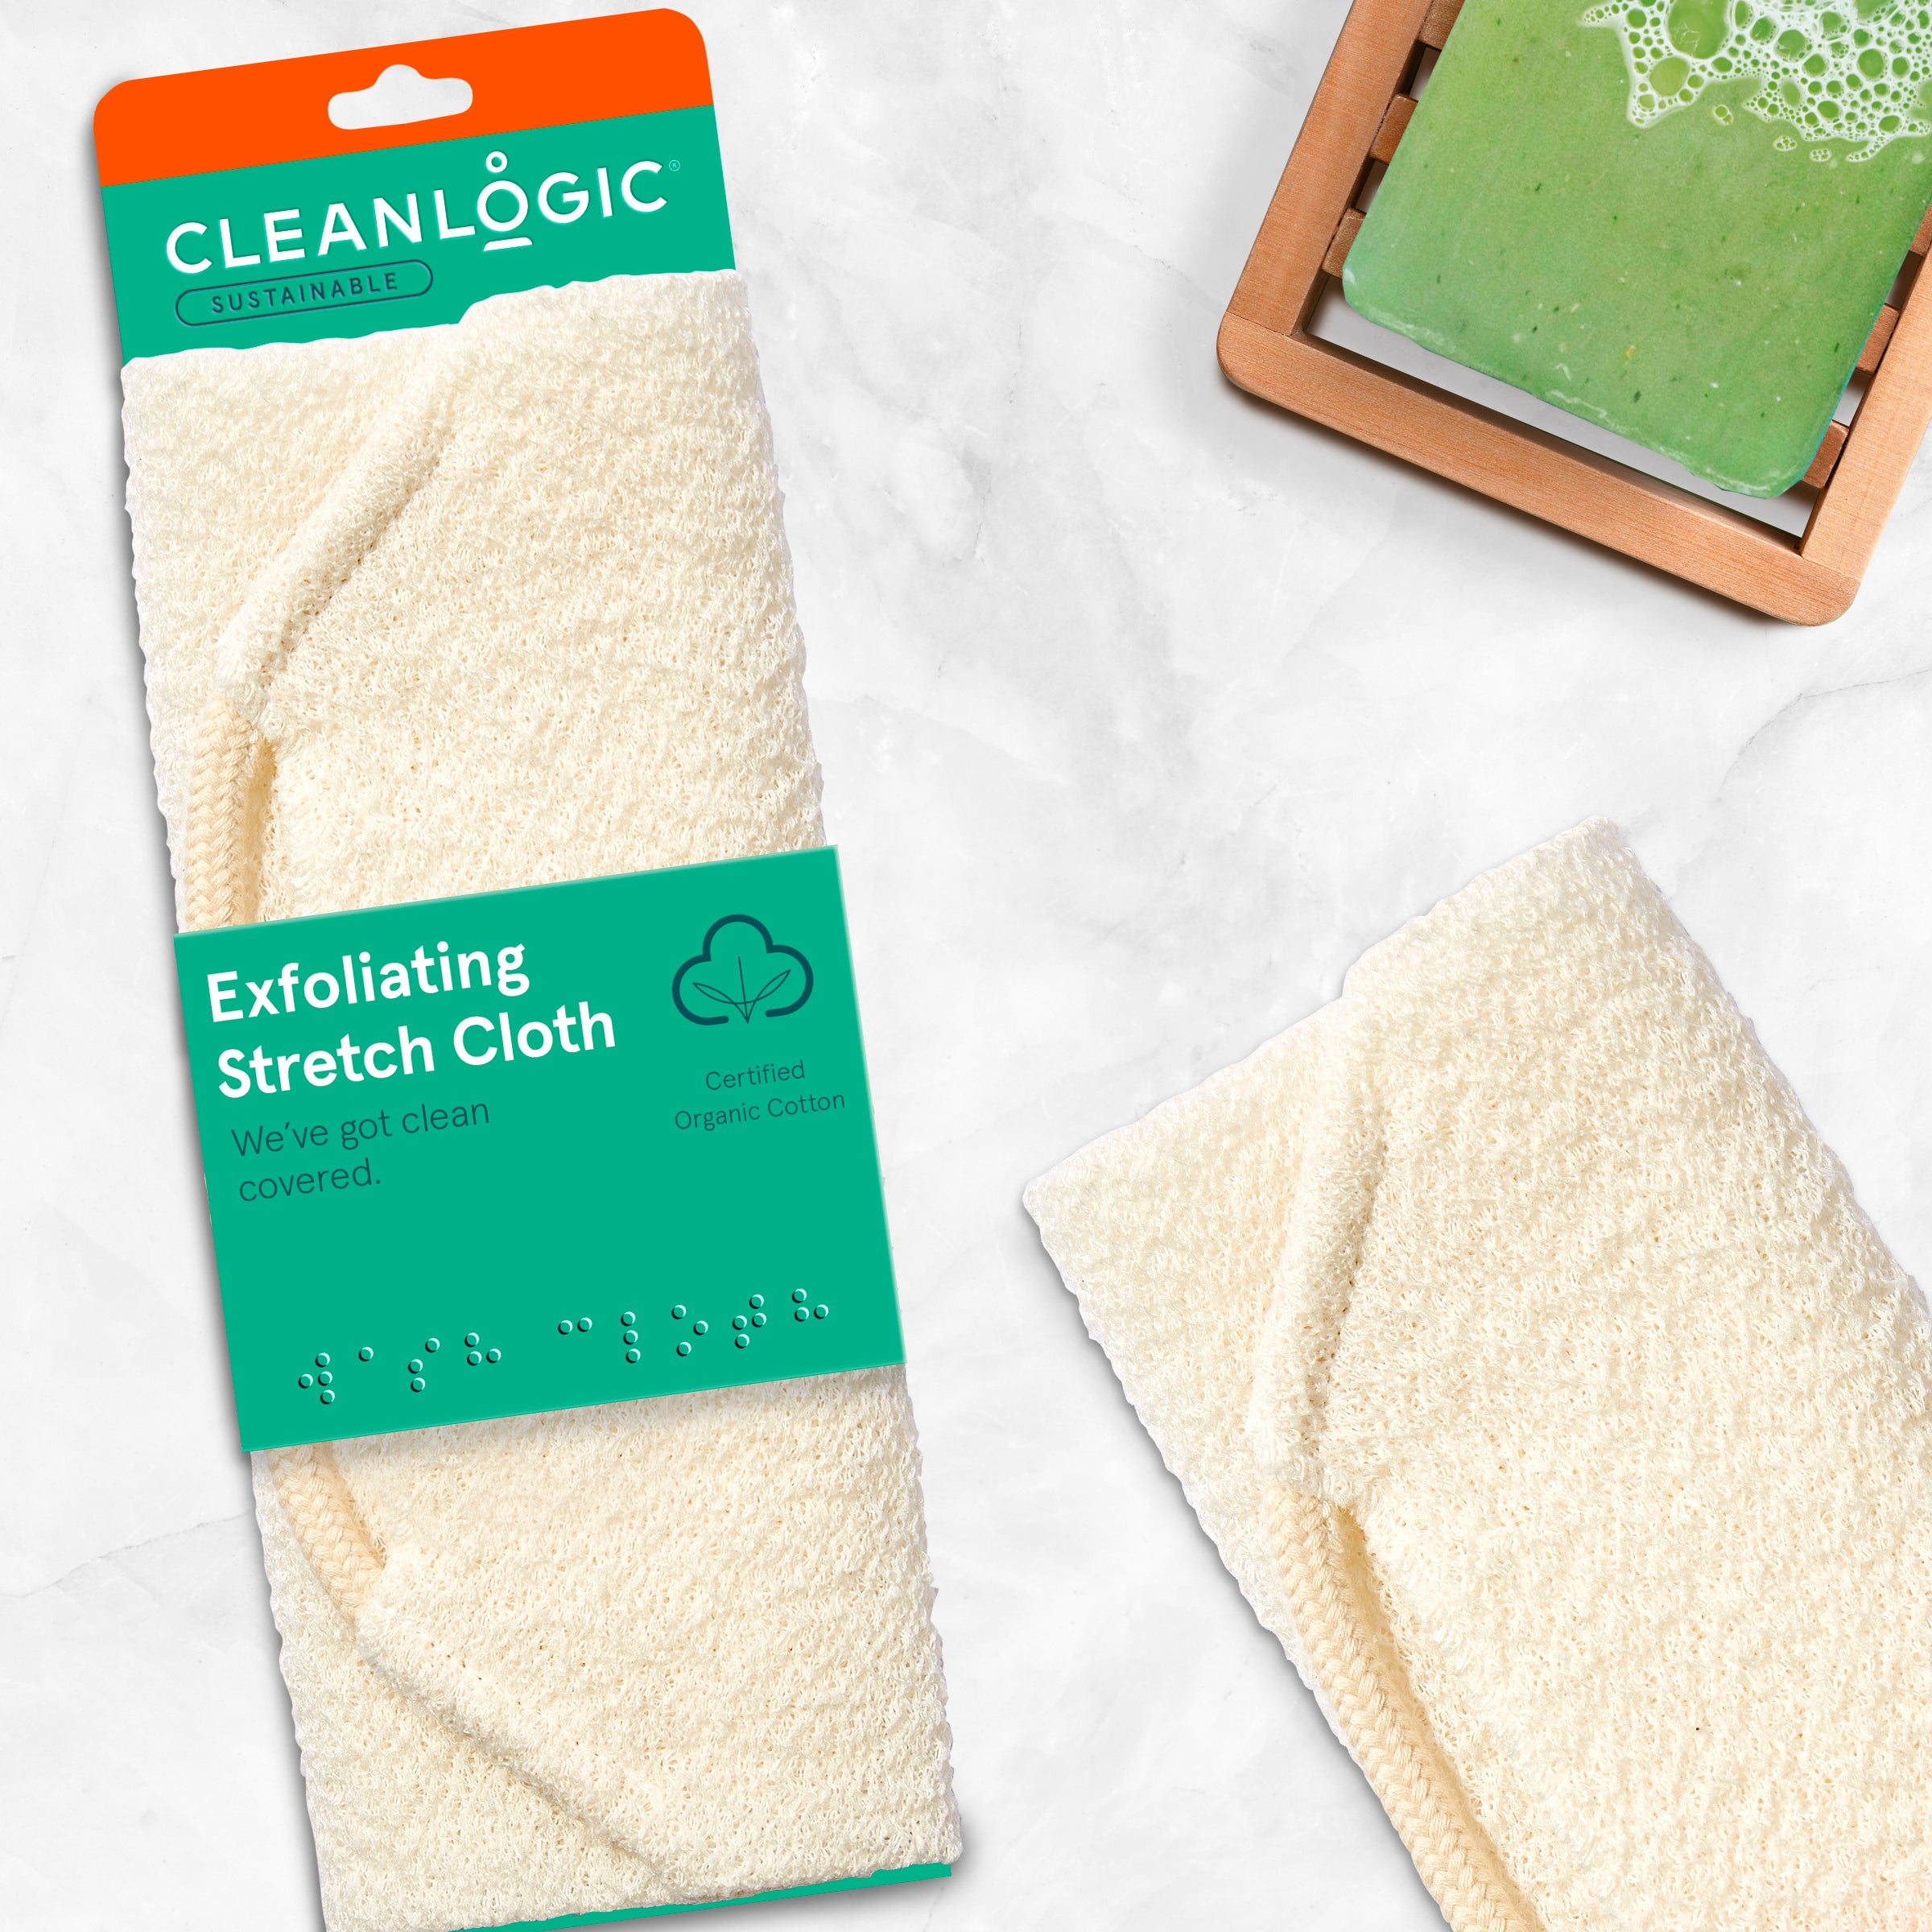 Cleanlogic Sustainable Organic Home Spa Collection